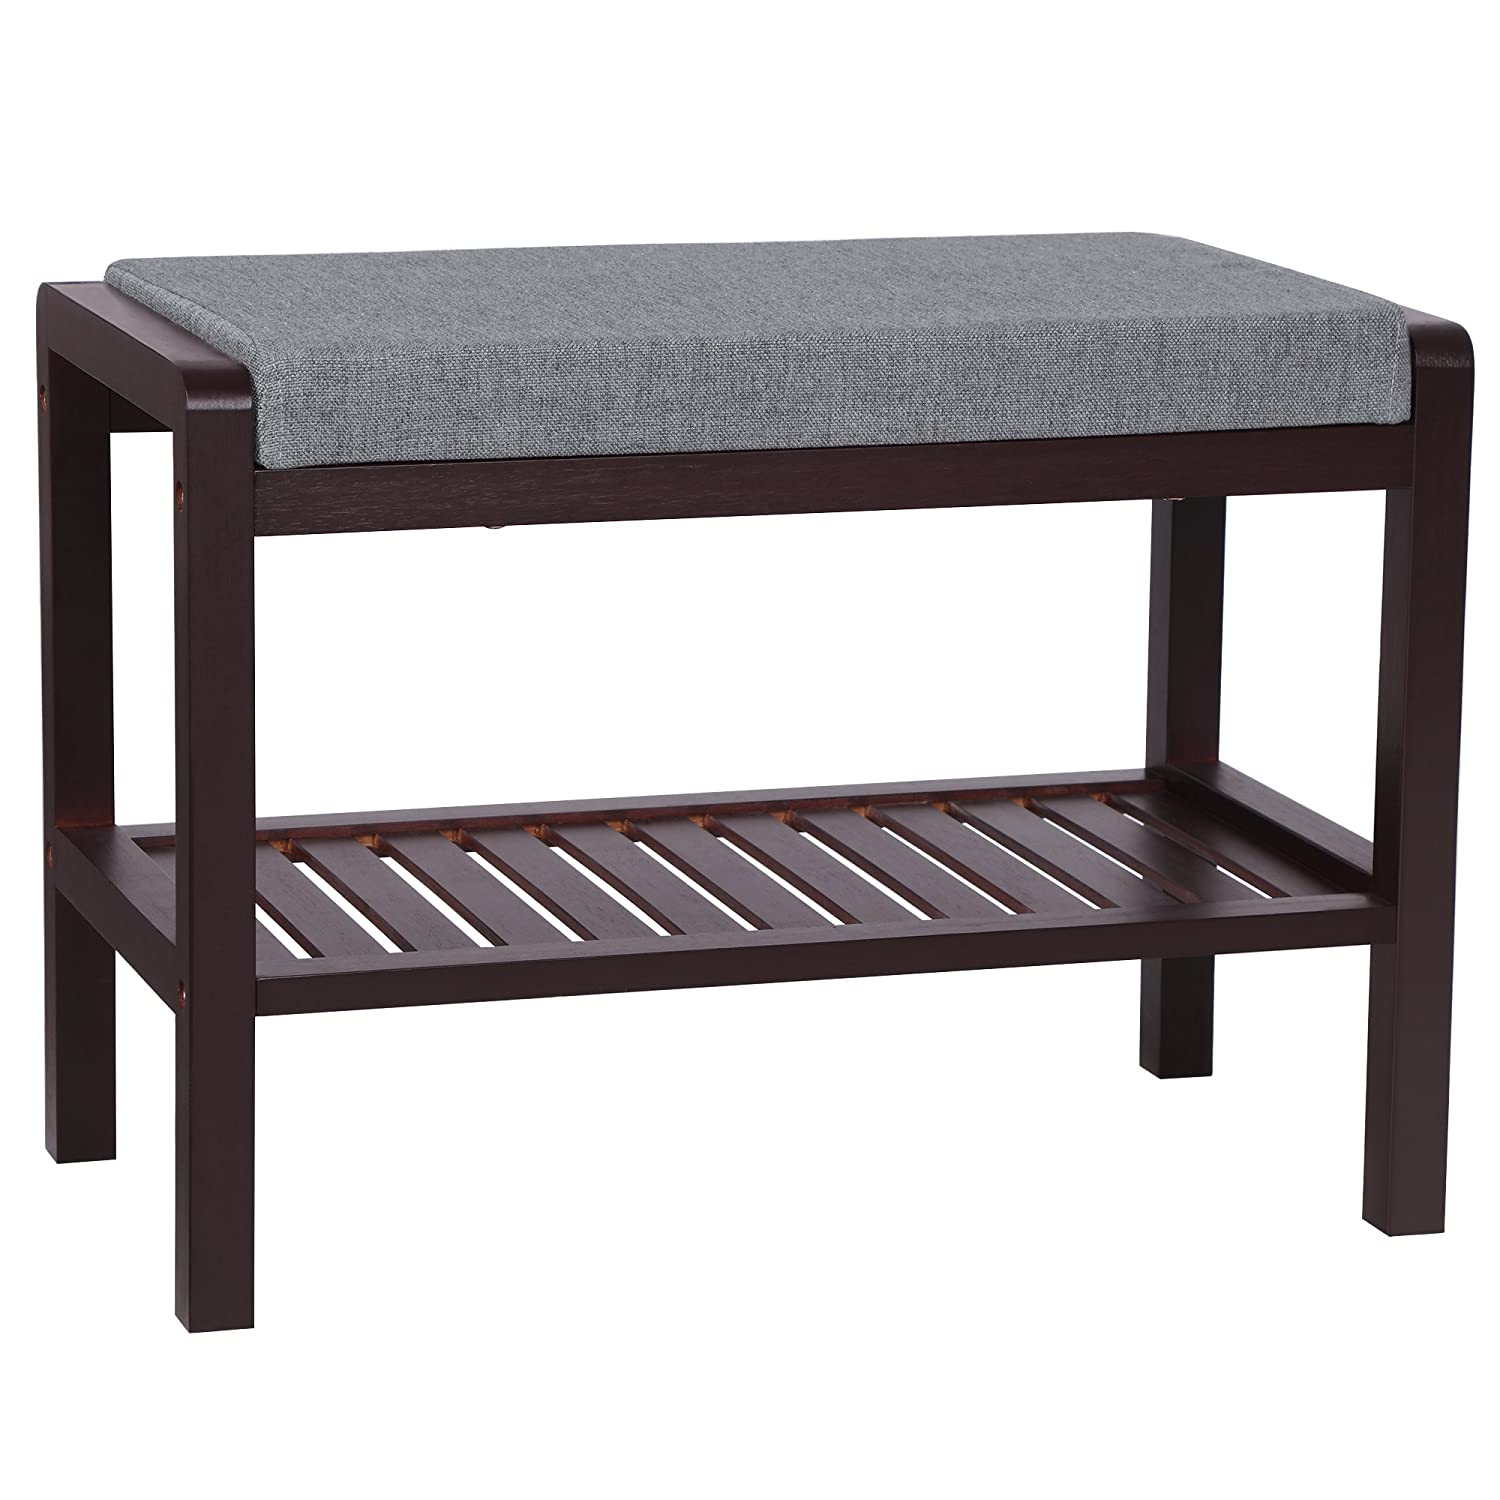 Large Storage Bench For Outdoor And Indoor Space SONGMICS Bamboo Shoe Bench Rack with Cushion Upholstered Padded Seat Storage  Shelf Bench for Entryway Bedroom